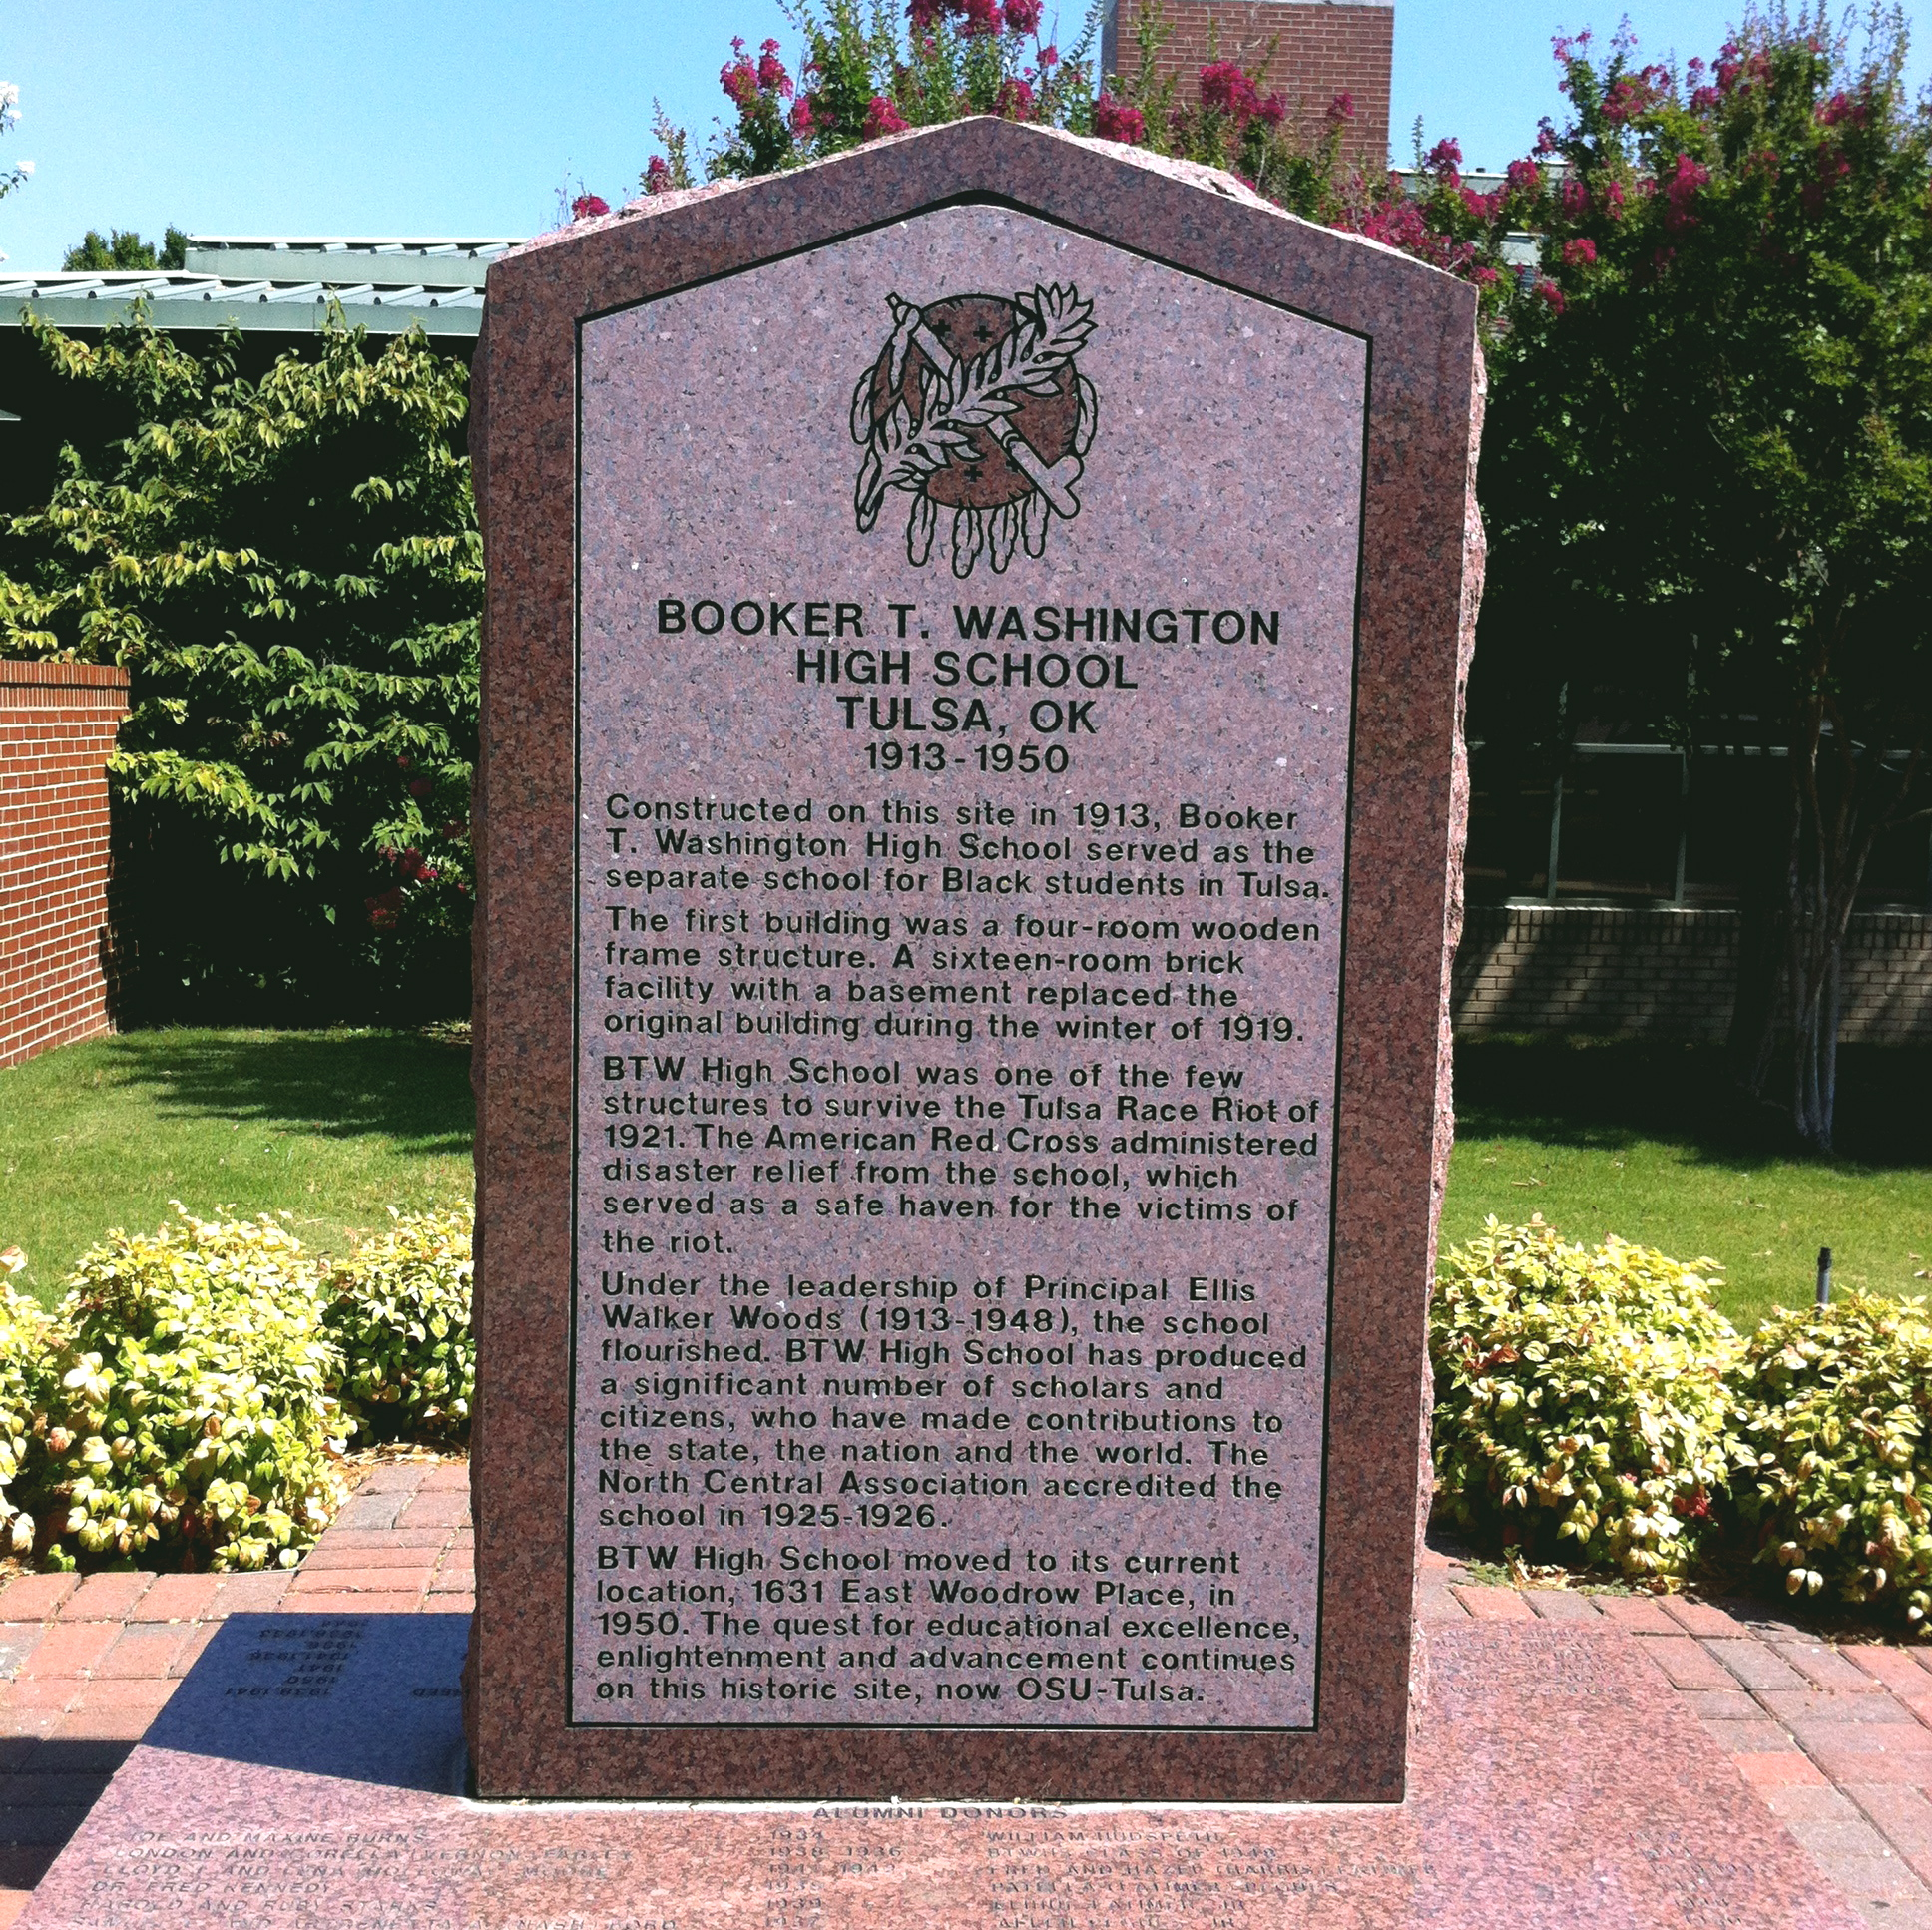 booker t. washington historic marker